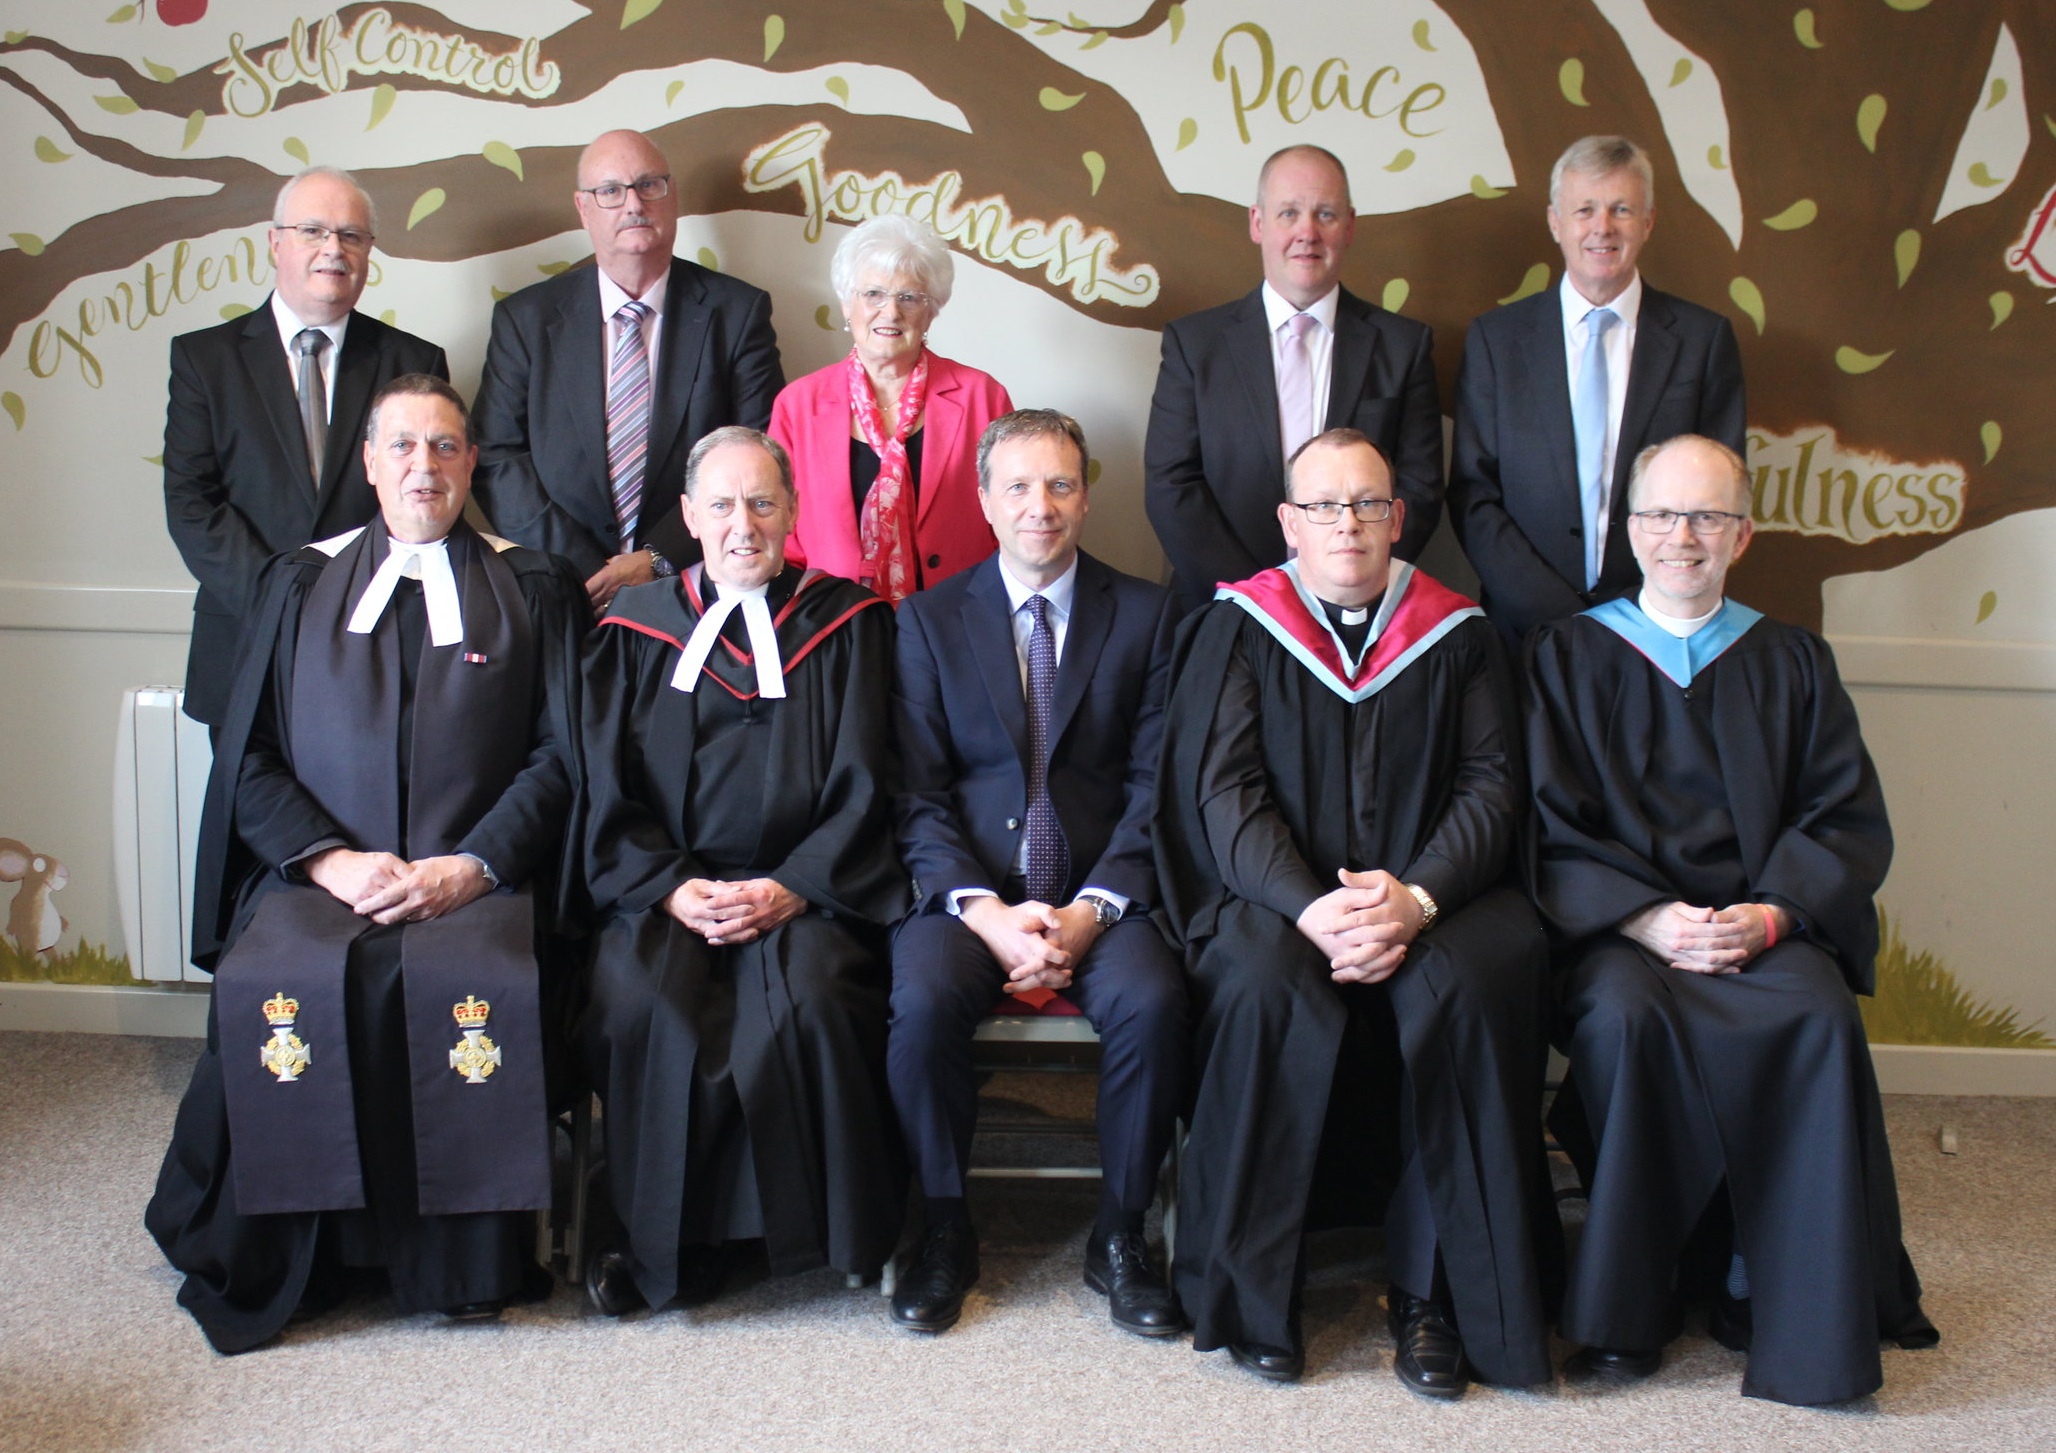 The Commission of Presbytery prior to the service. The front row (from left to right) is Rev Kenneth Crowe (Convener of the vacancy at First), Rev Noel McClean (Clerk of Presbytery), Rev Stephen McCracken, Rev Rodney Moody (Moderator of Presbytery), Rev Mark Jones. Neil Robinson, clerk of session at First Presbyterian, Ballymoney is in the back row at the far right.